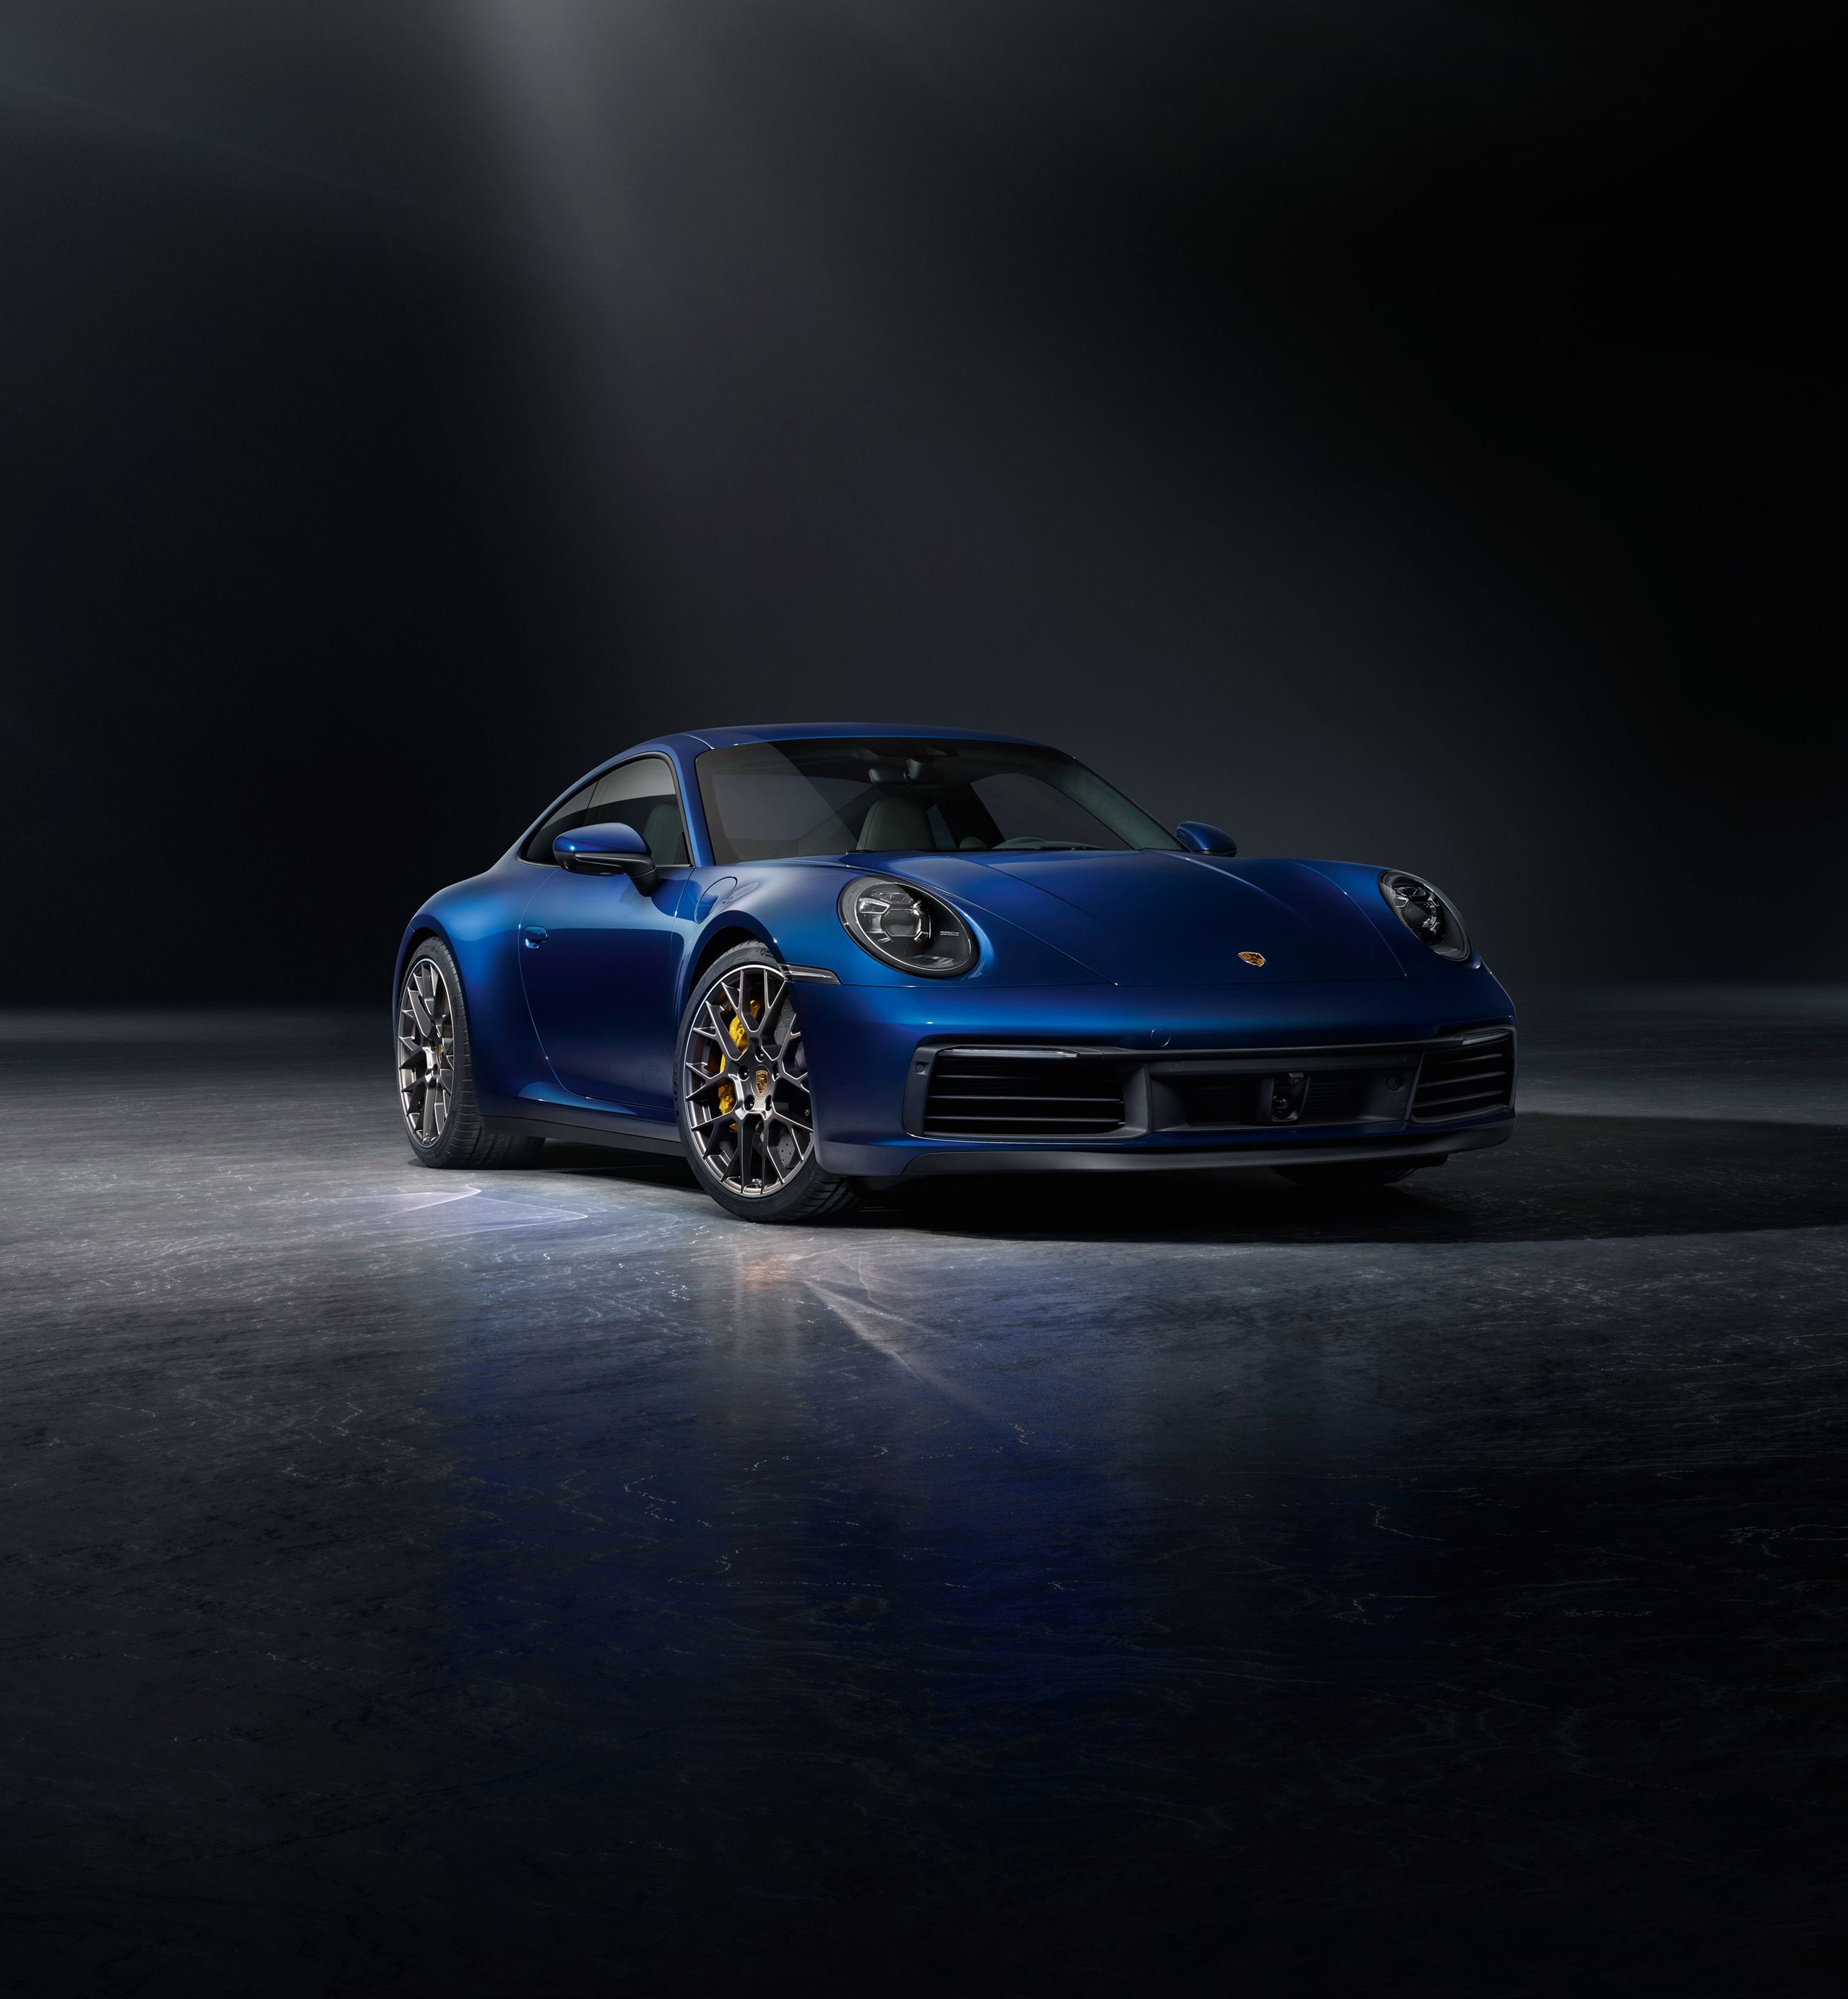 Hd Mobile Wallpaper Iphone Wallpaper 169 Porsche 911 Carrera 4s Porsche 911 911 Carrera 4s